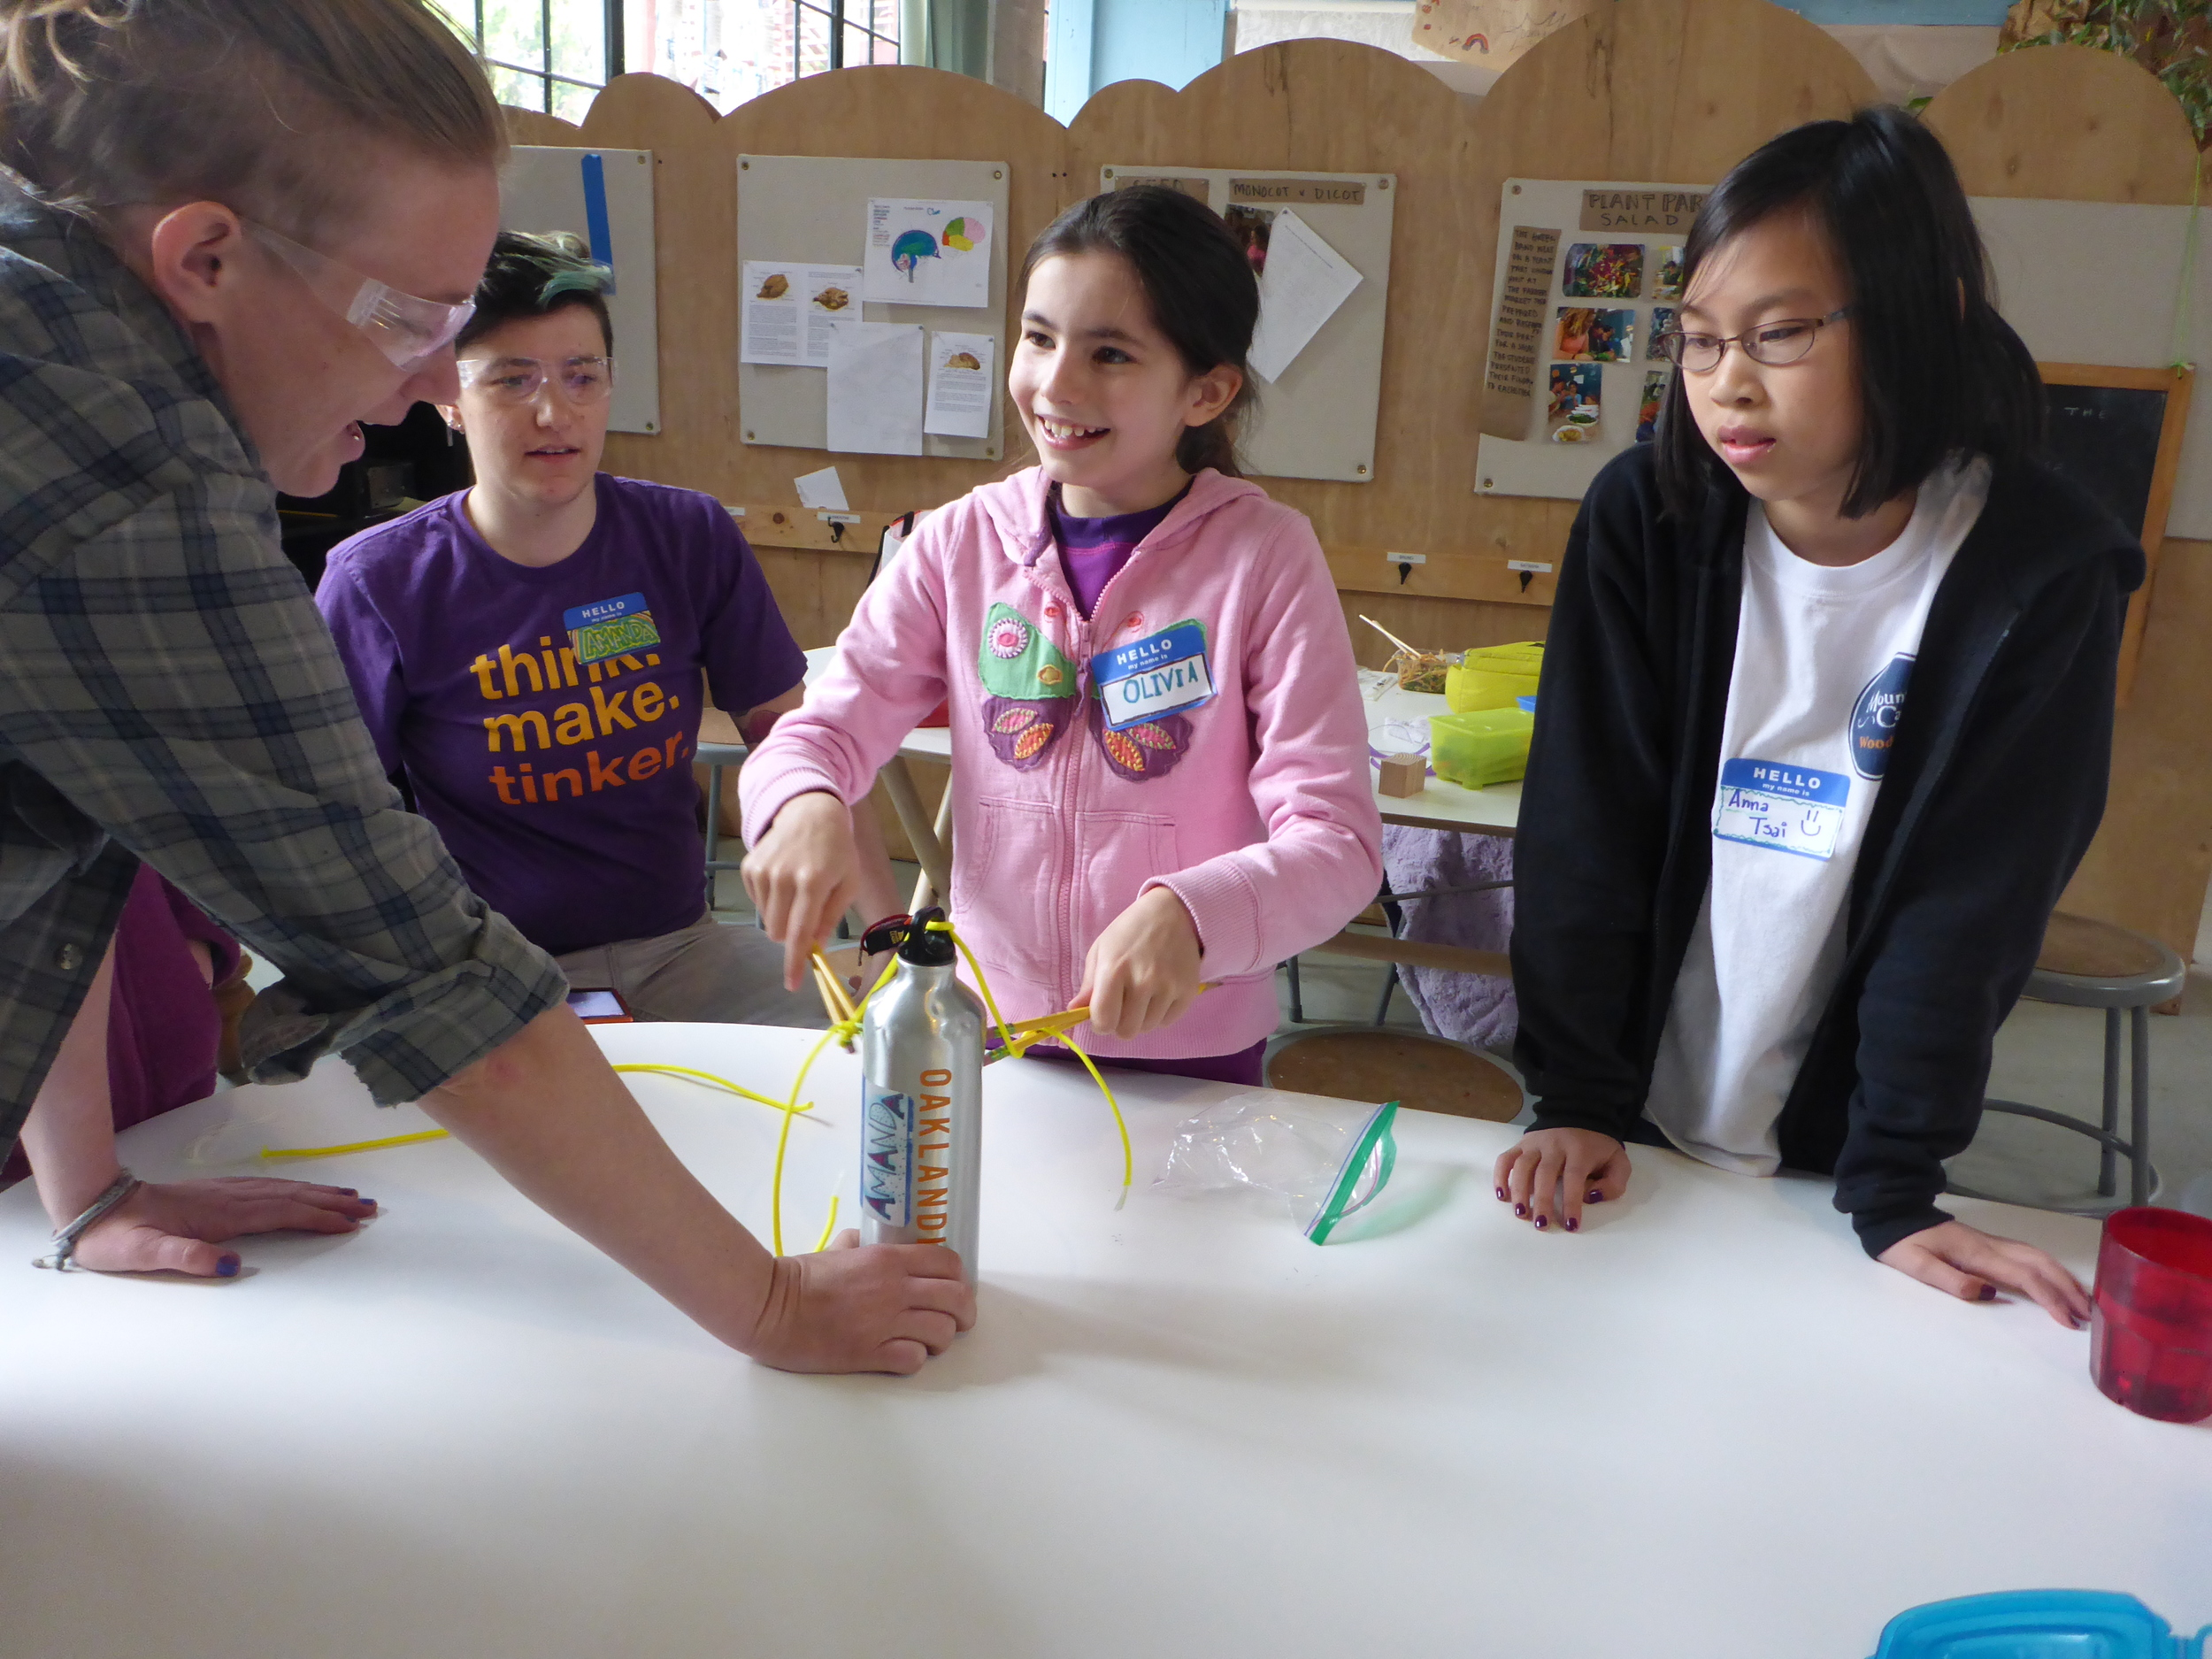 Lindsay, Amanda, Olivia and Anna try to tie a length of paracord around a water bottle just using pencils as chopsticks.